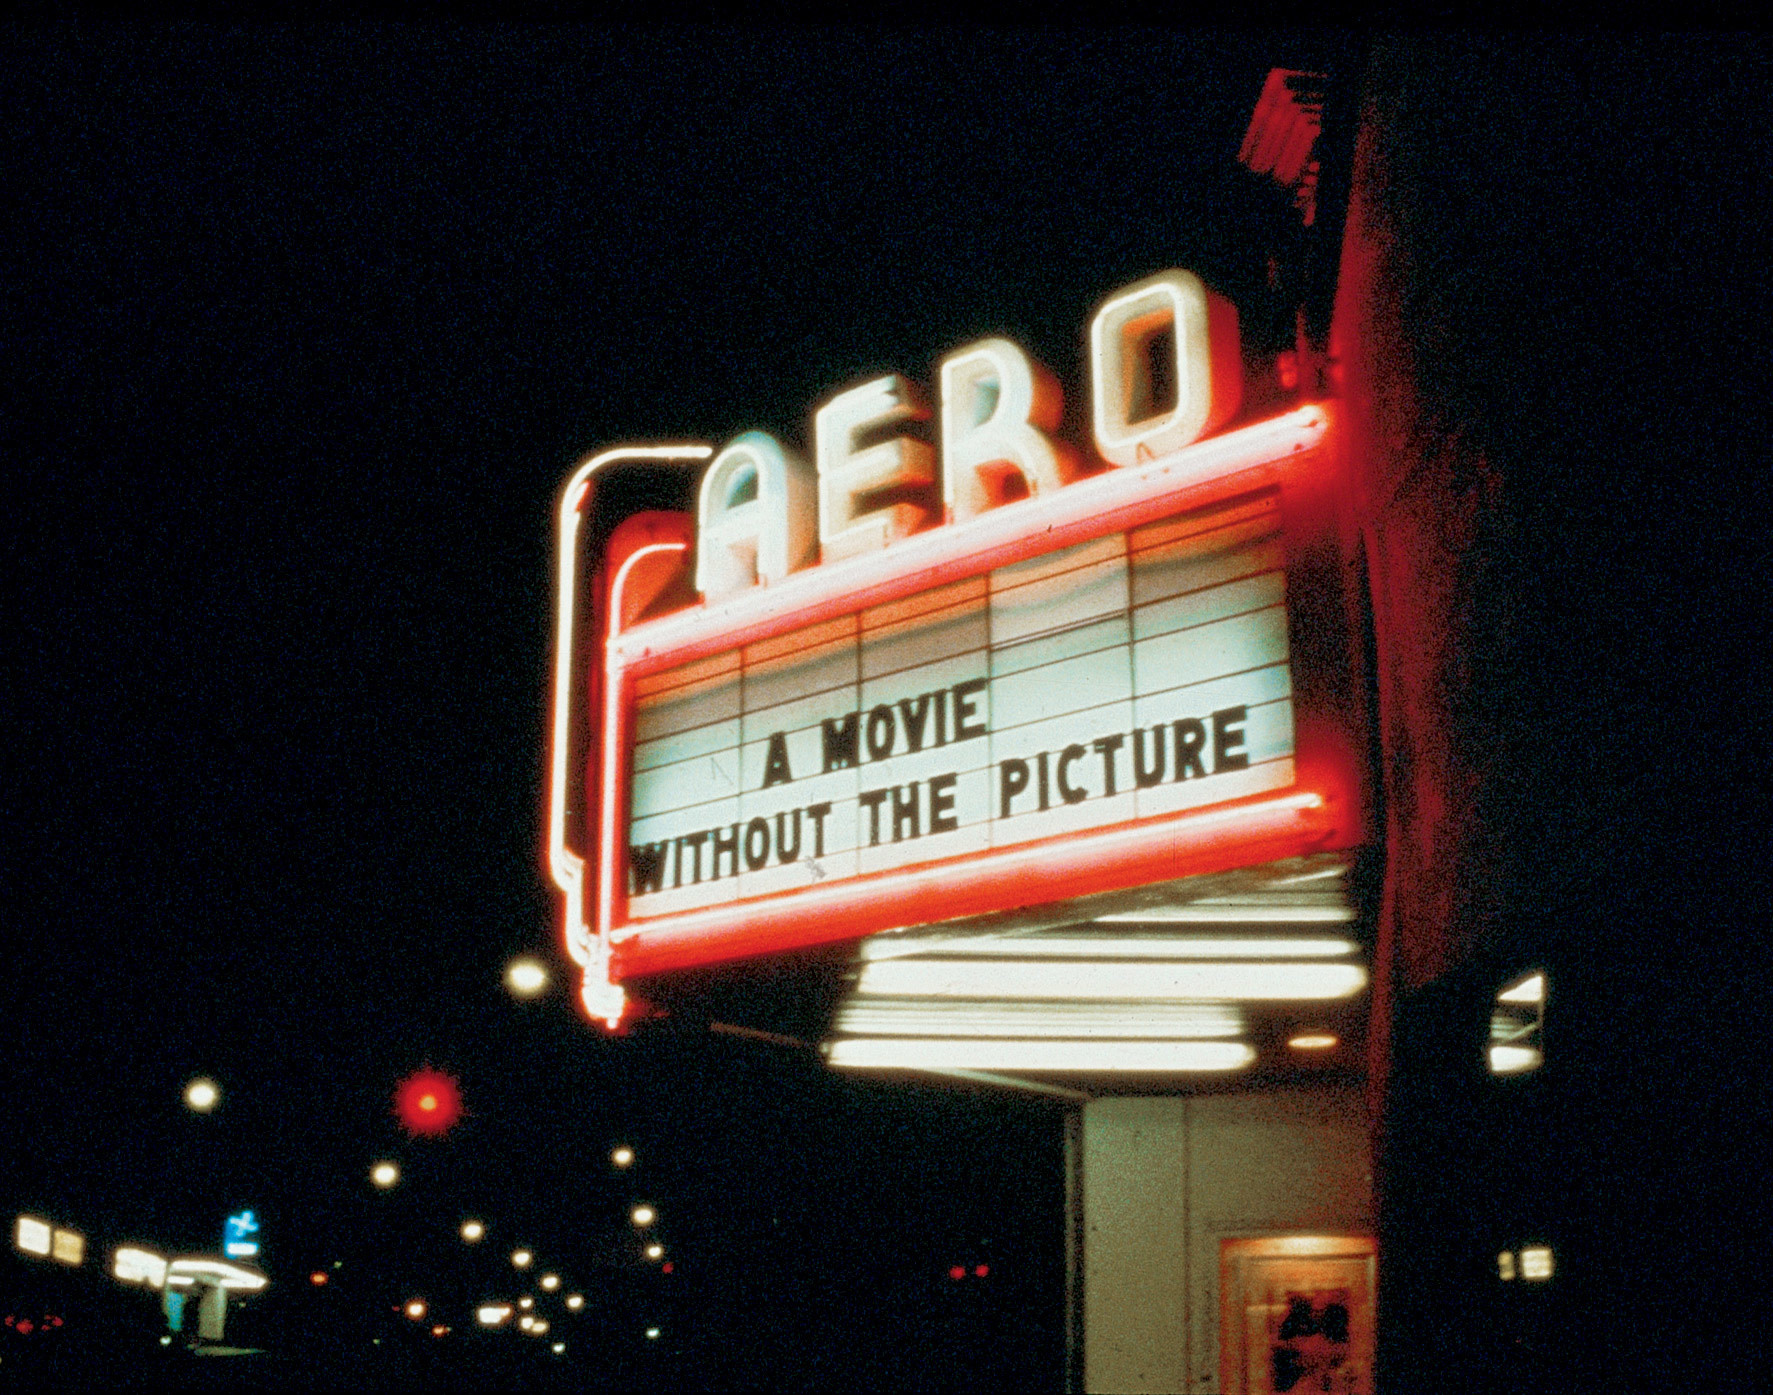 Marquee for A Movie Will Be Shown Without the Picture, Aero Theatre, Santa Monica, California, December 7, 1979. Courtesy Louise Lawler